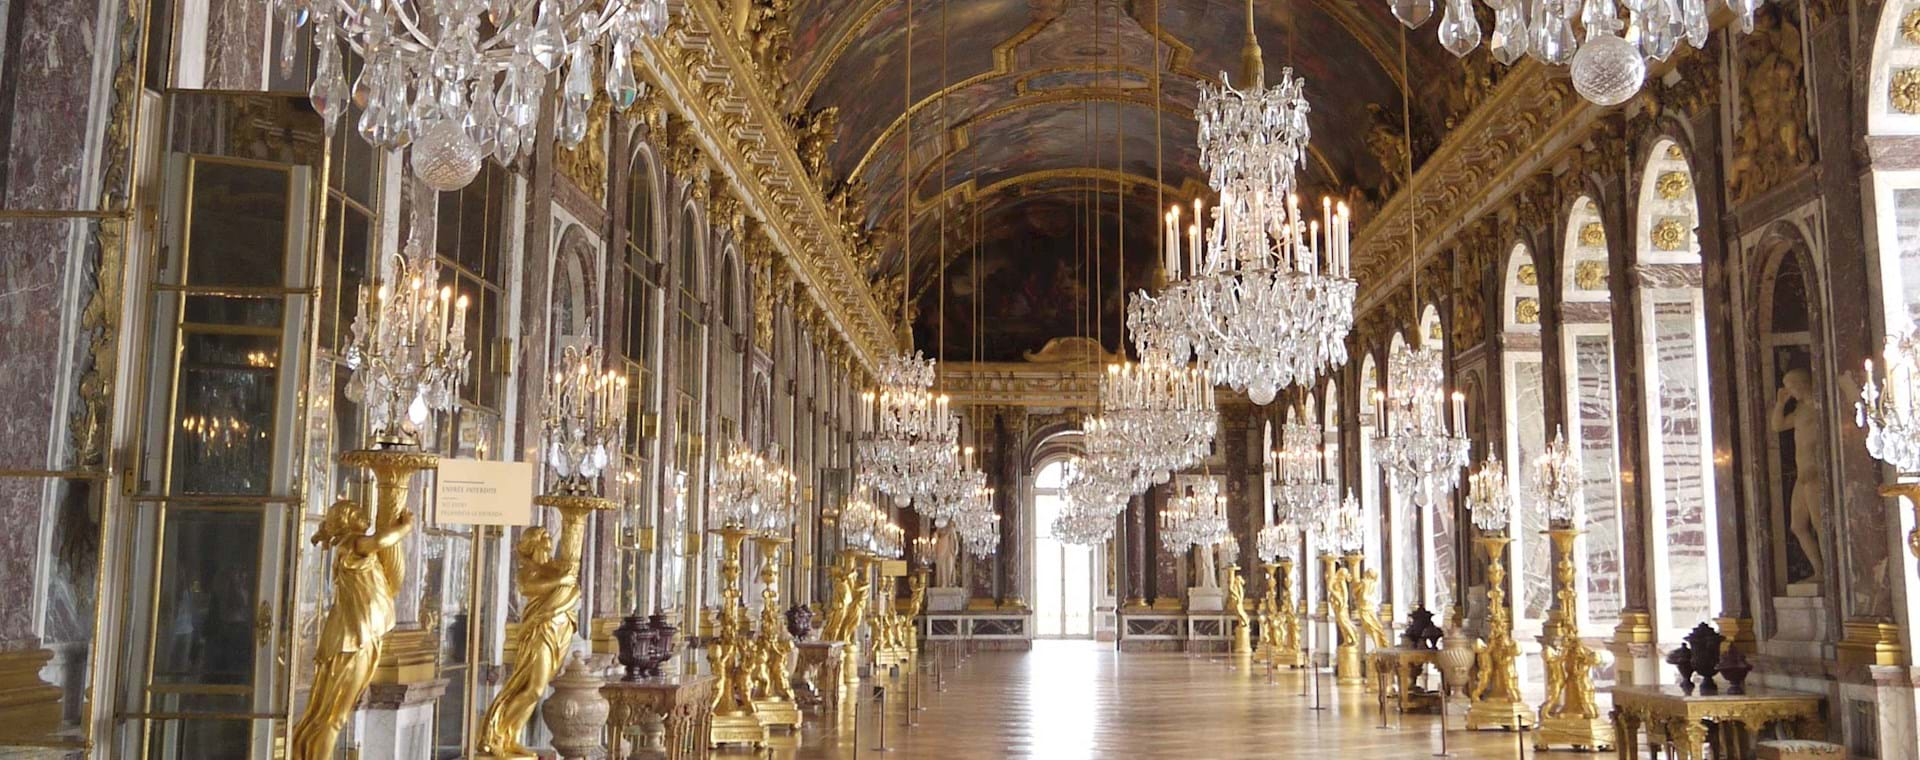 Versailles Palace & Gardens Tour for Families